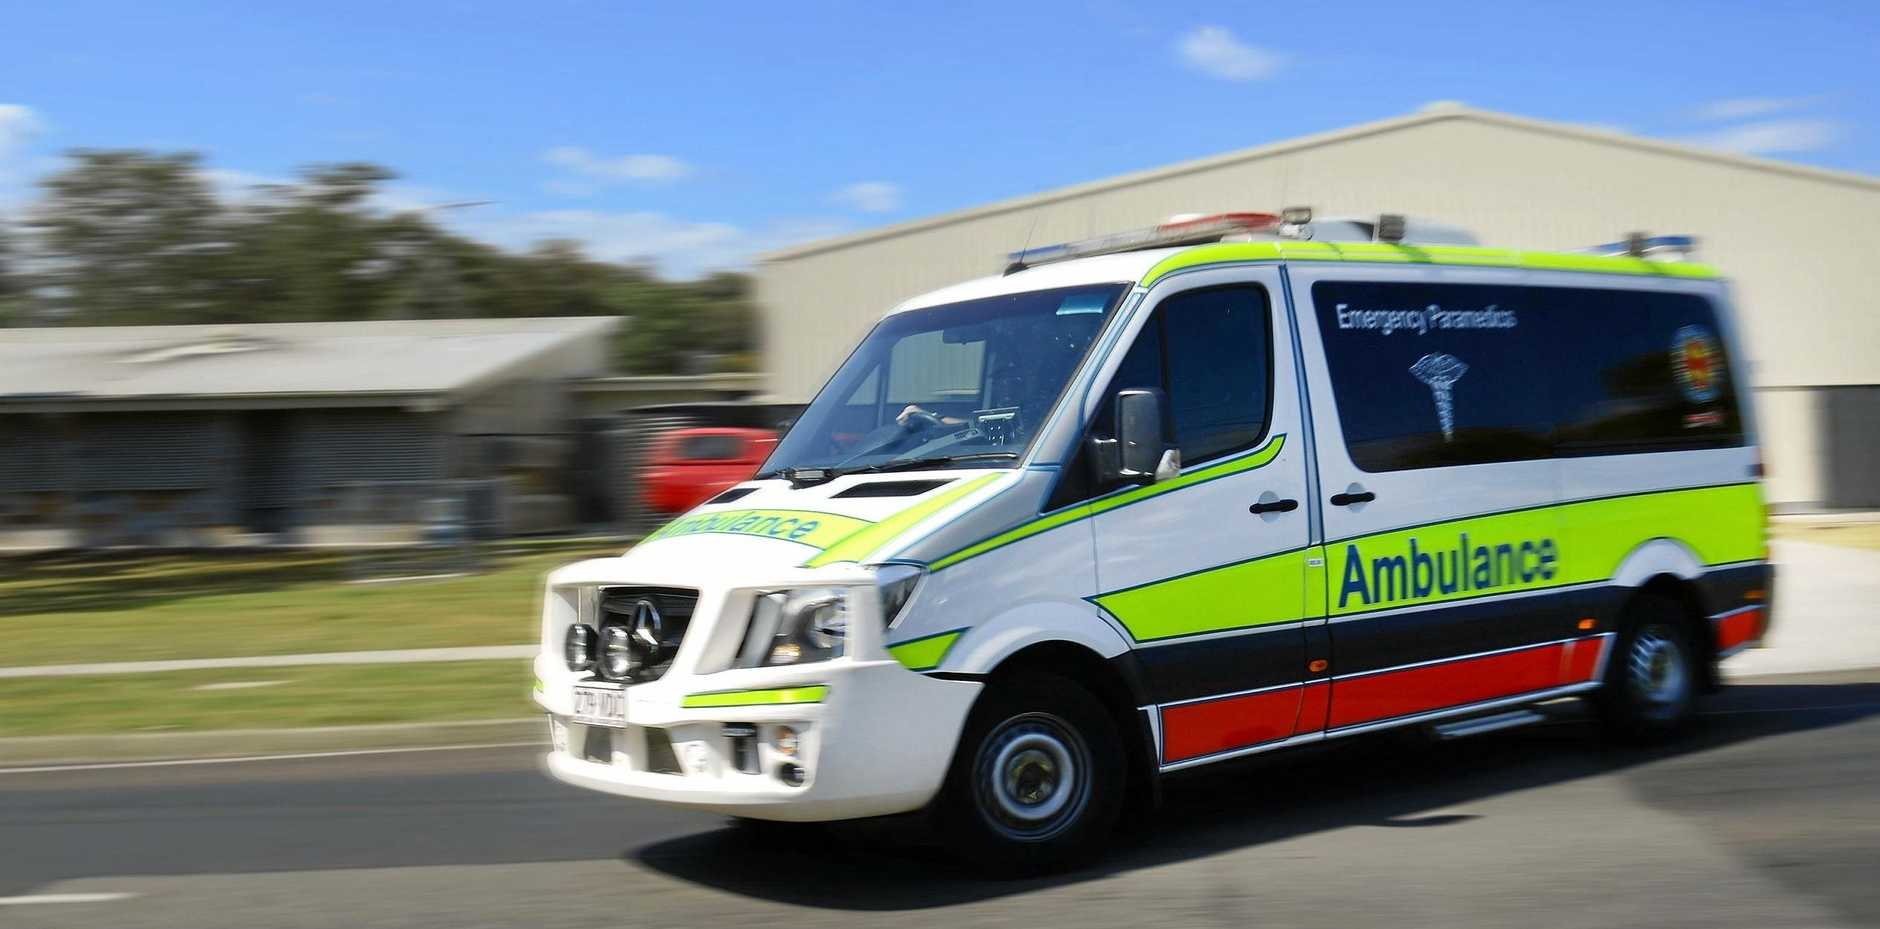 A cyclist has been transported to the Mackay Base Hospital this morning after being struck by a car.